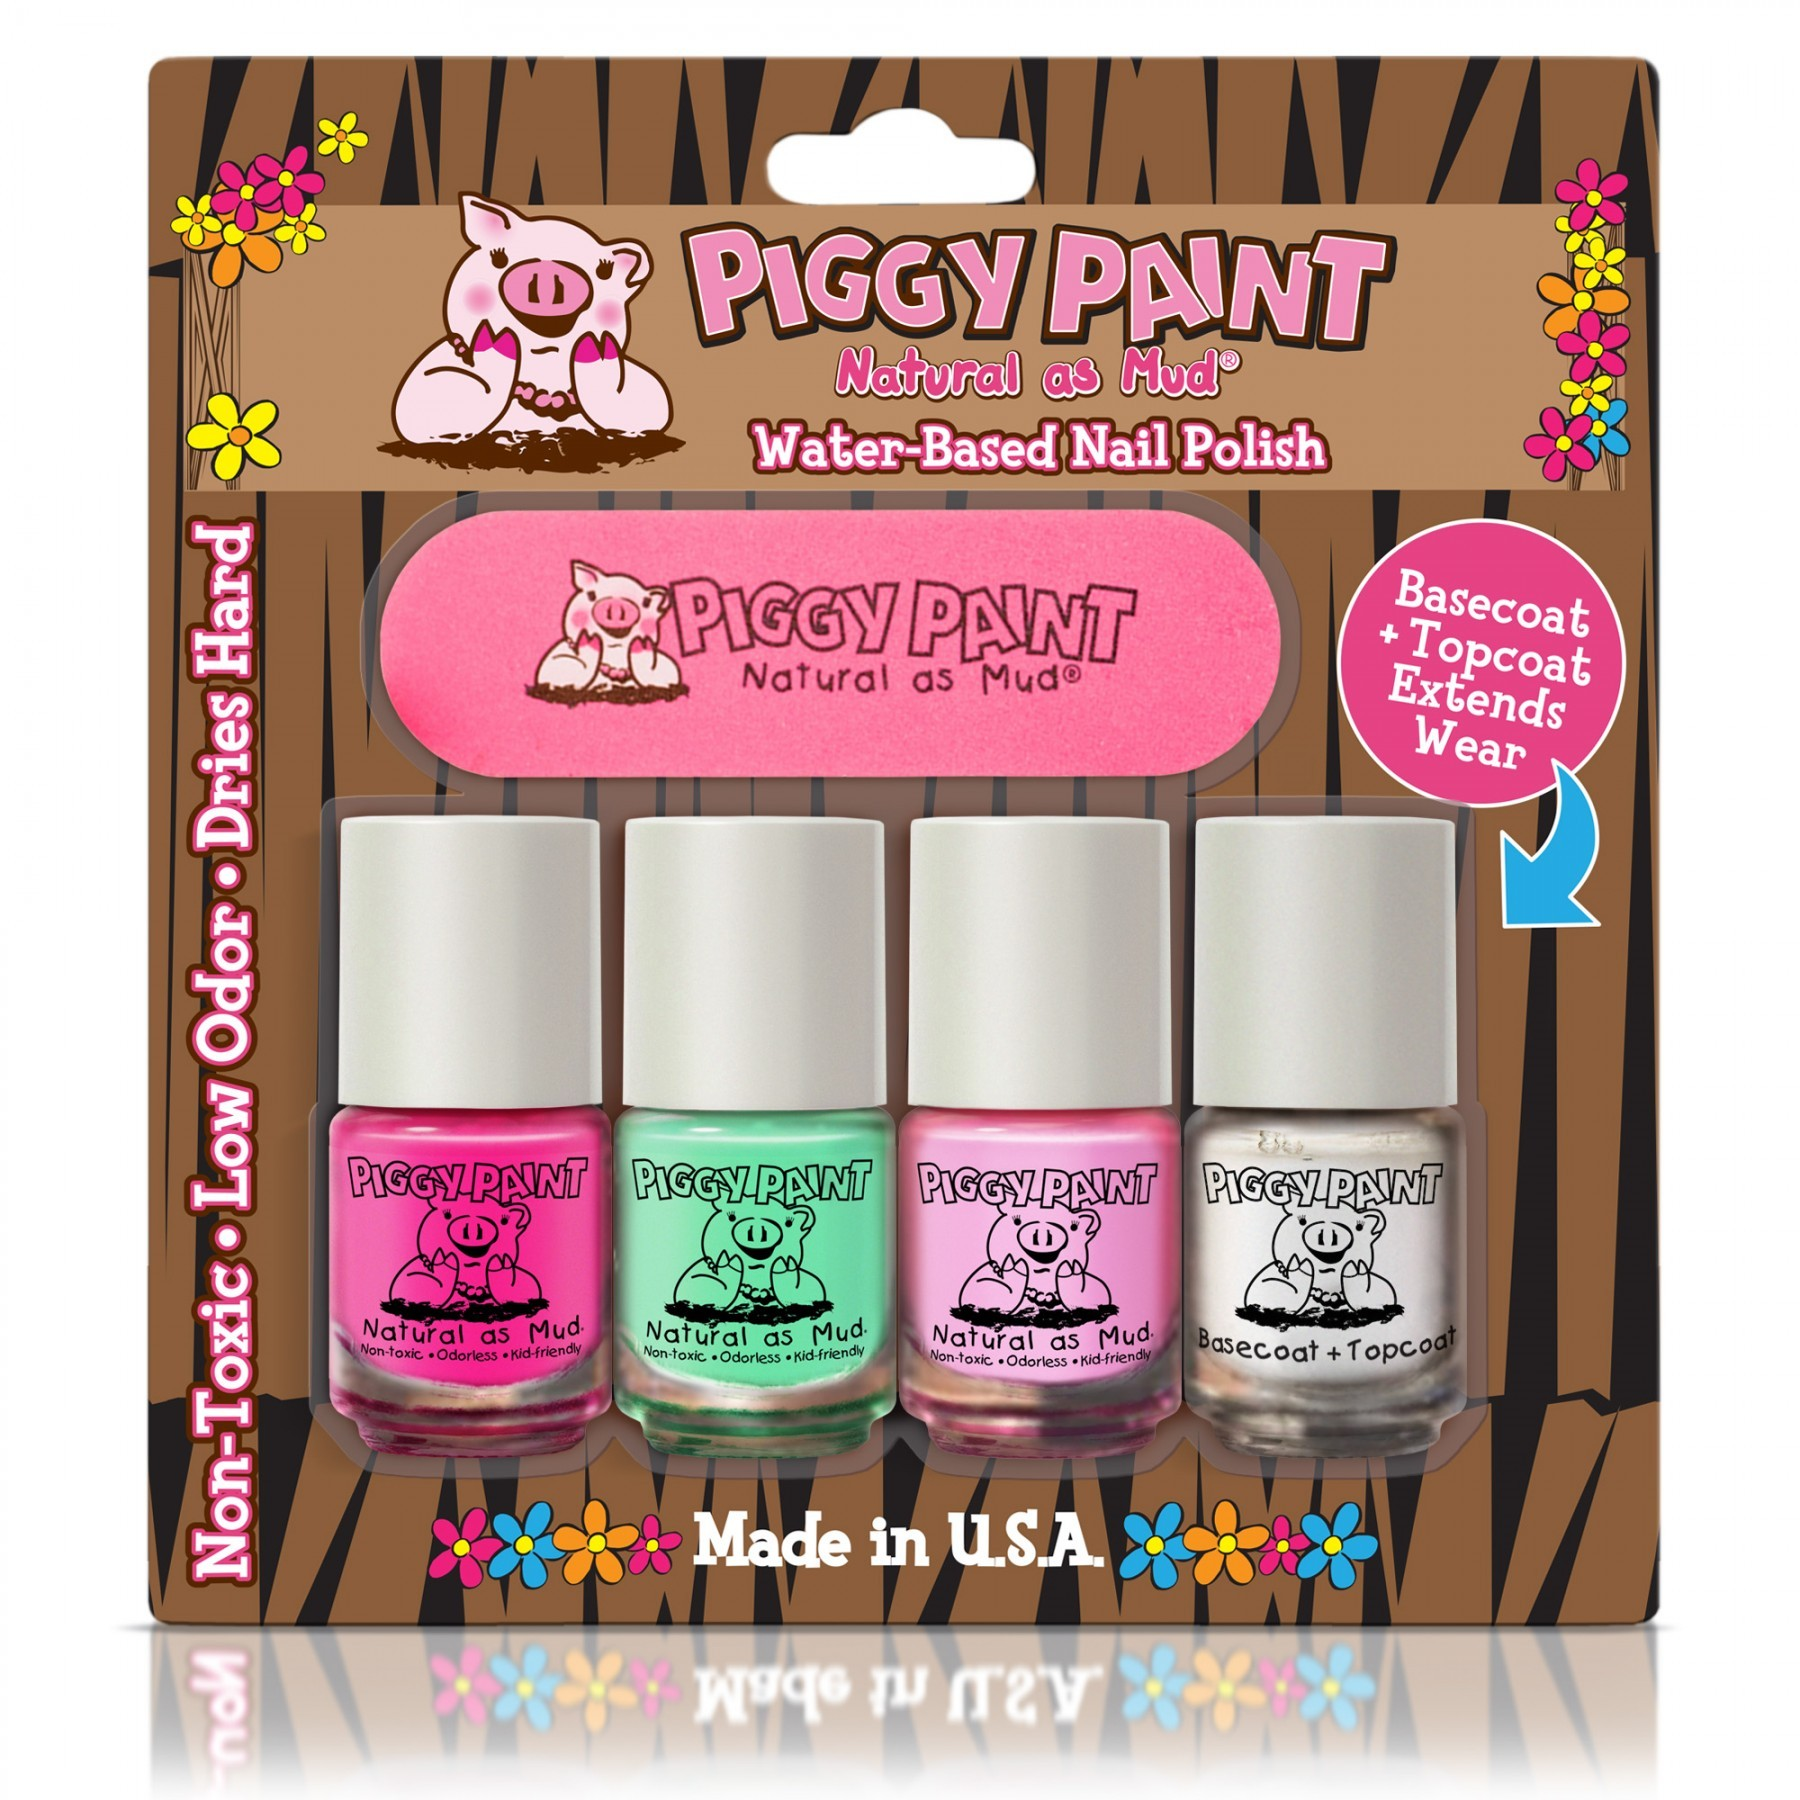 piggy_paint_natural_nail_polish_for_kids_1.jpg